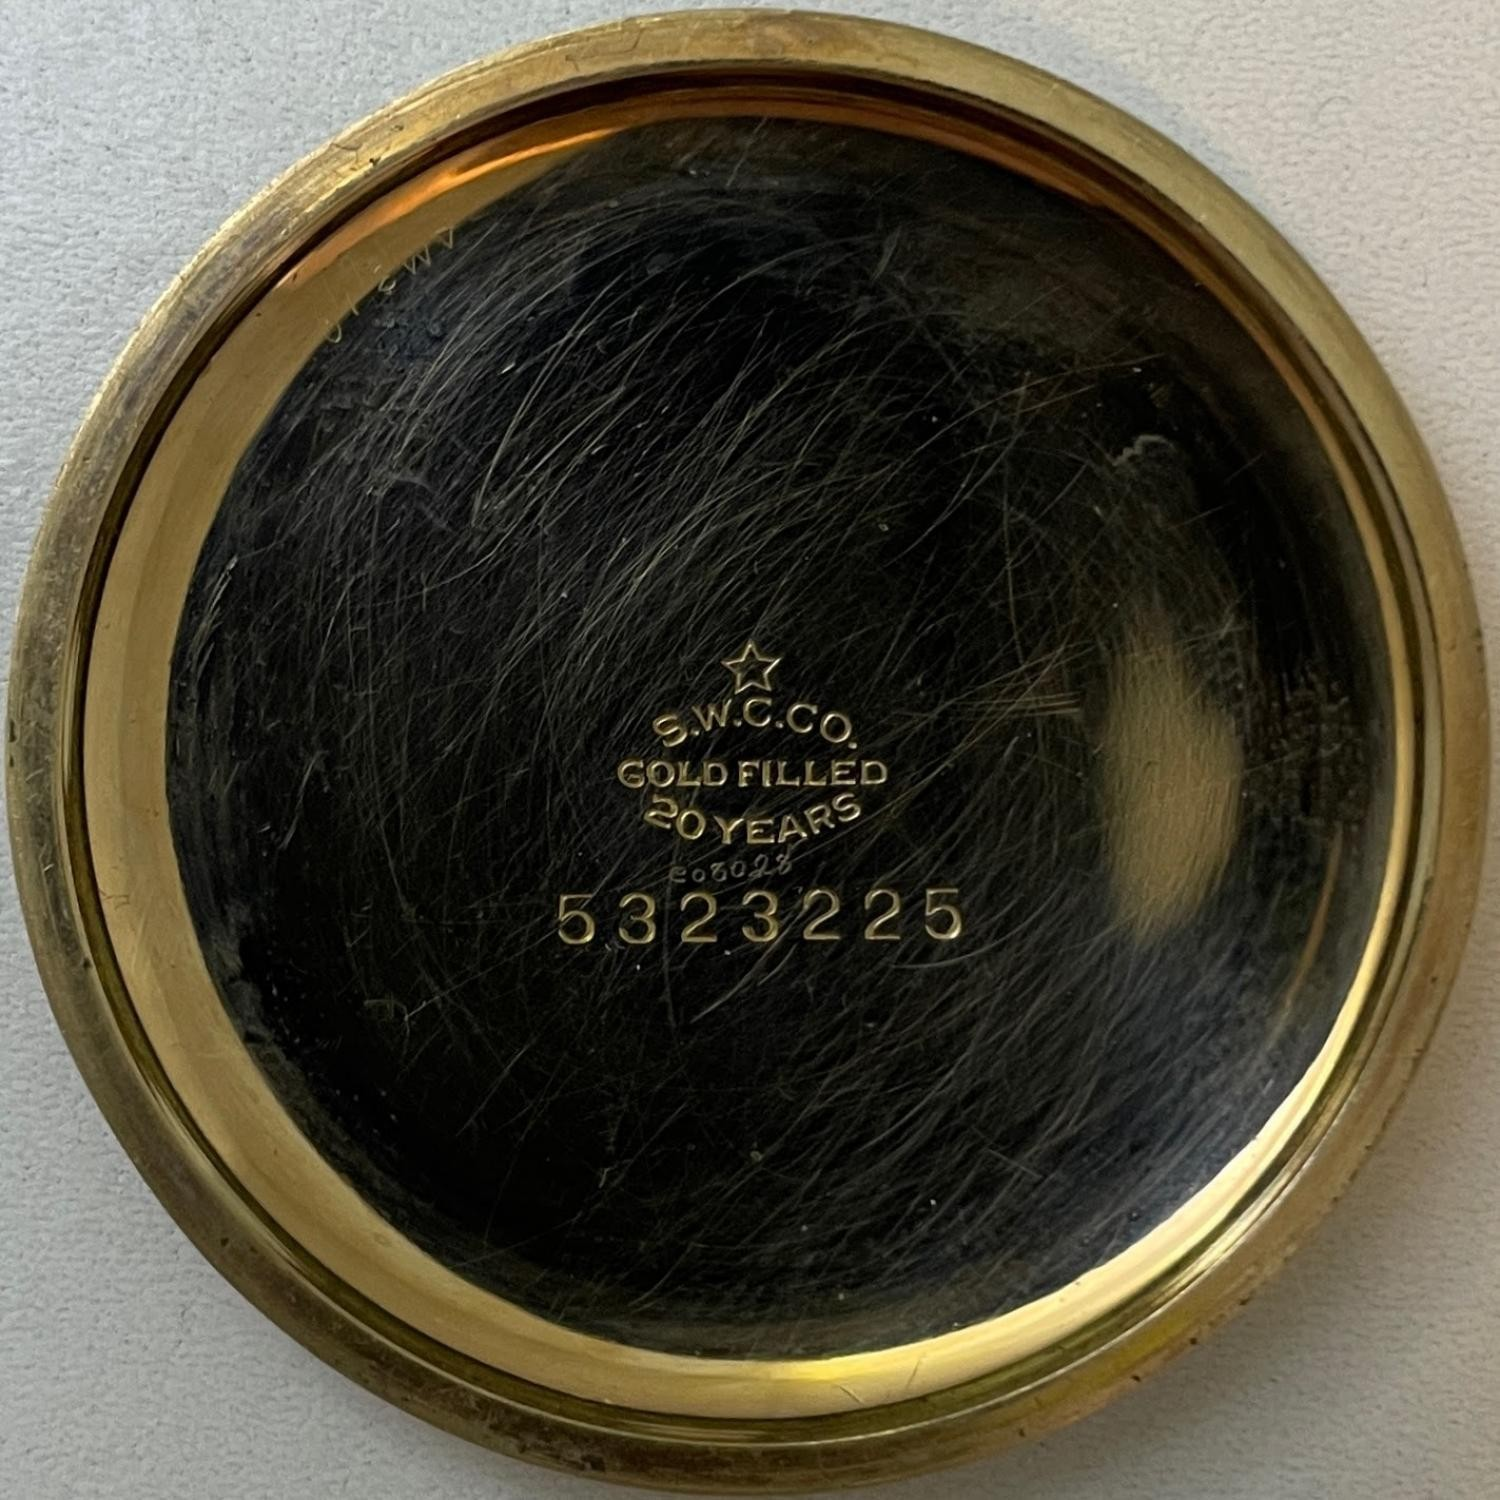 Image of New York Standard Watch Co. 1571 #BF081784 Case